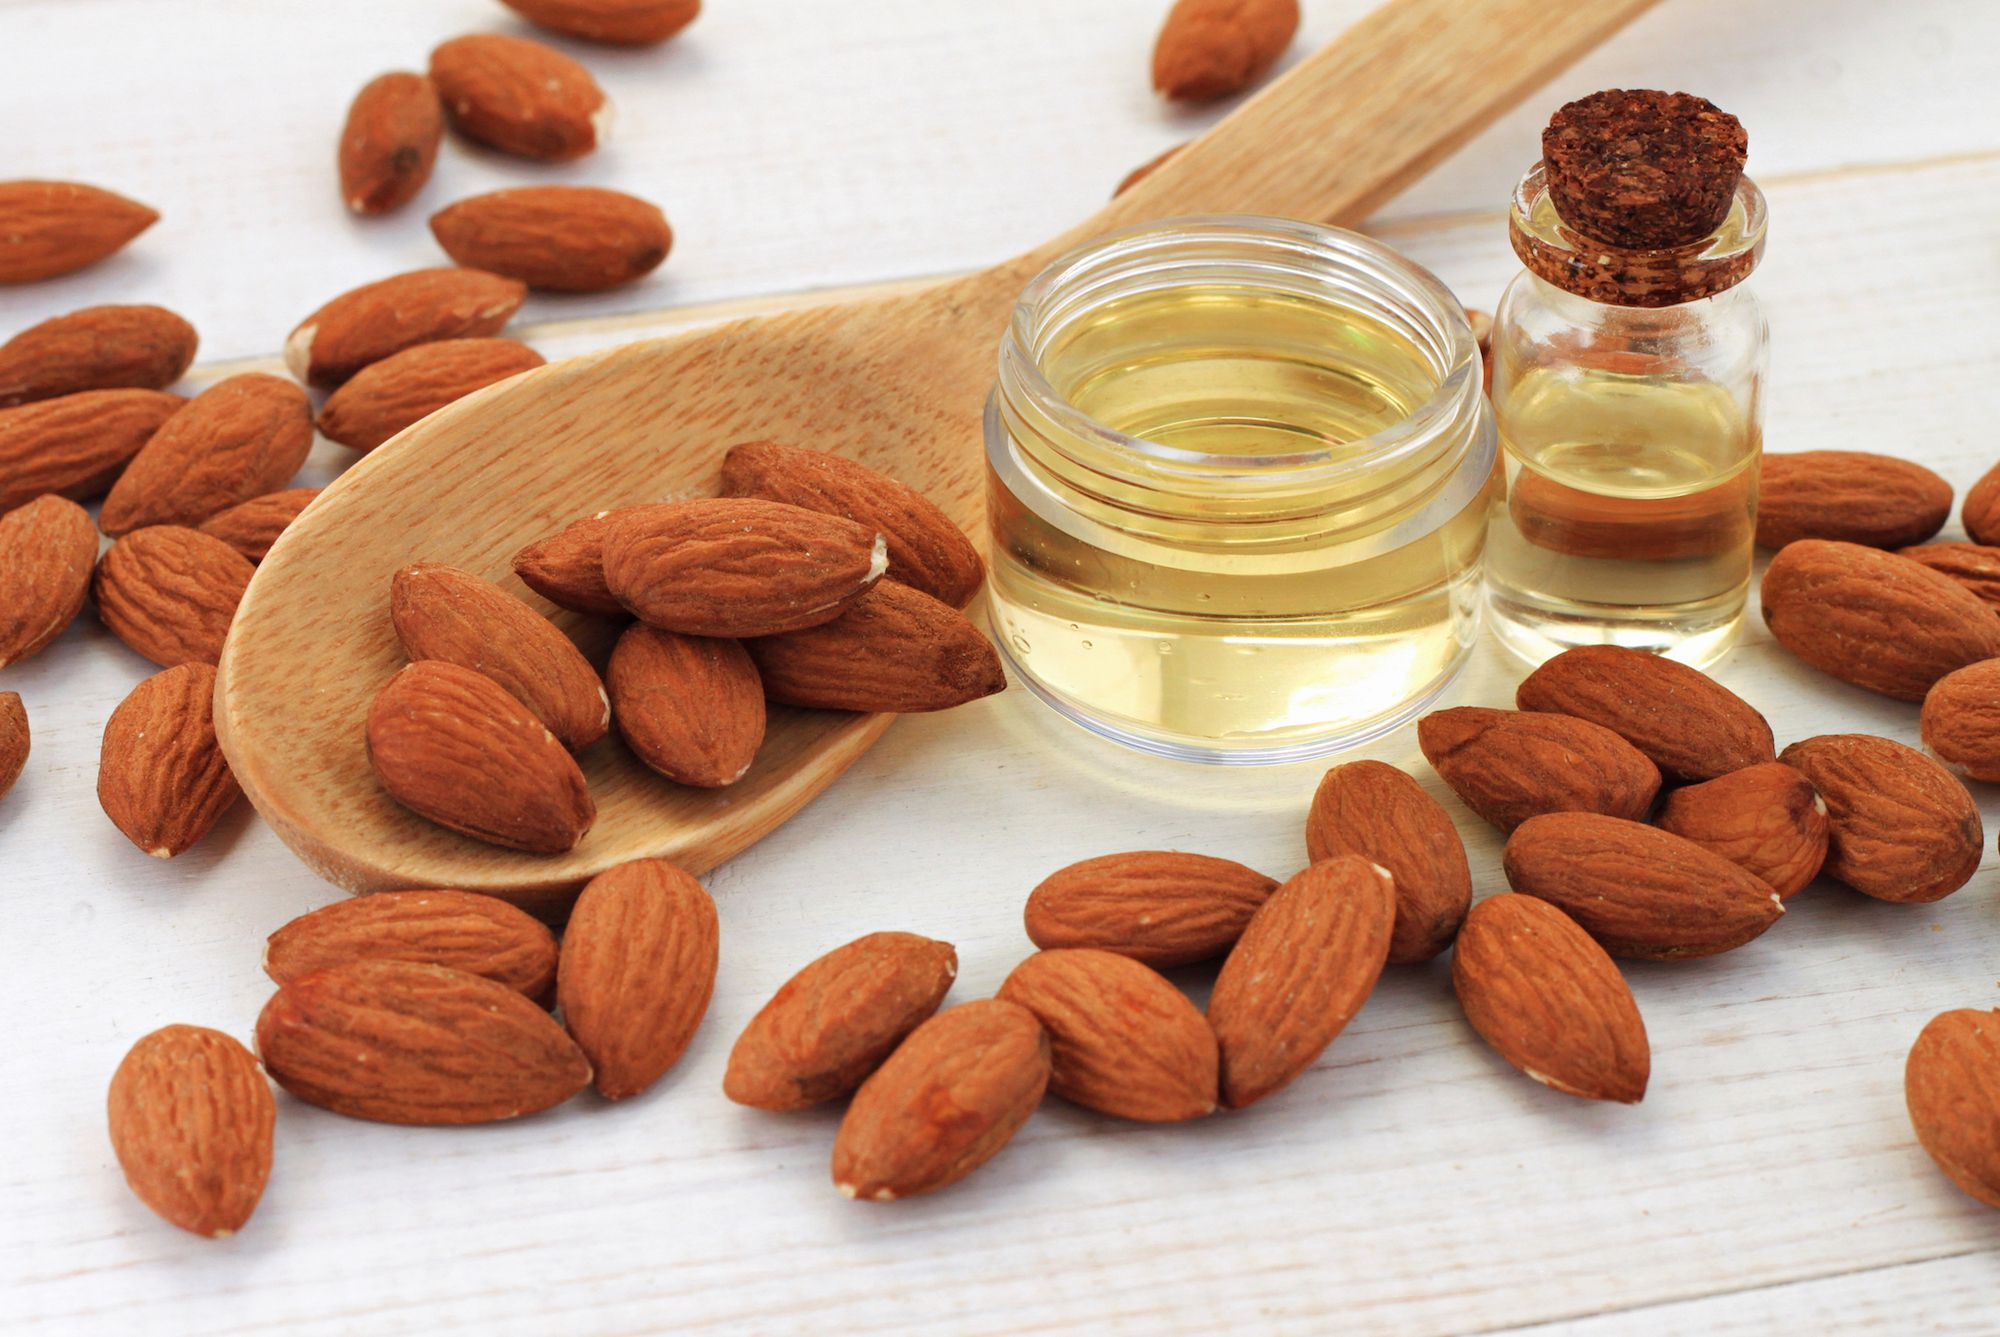 Is Almond Extract Safe If You Have Nut Allergies?